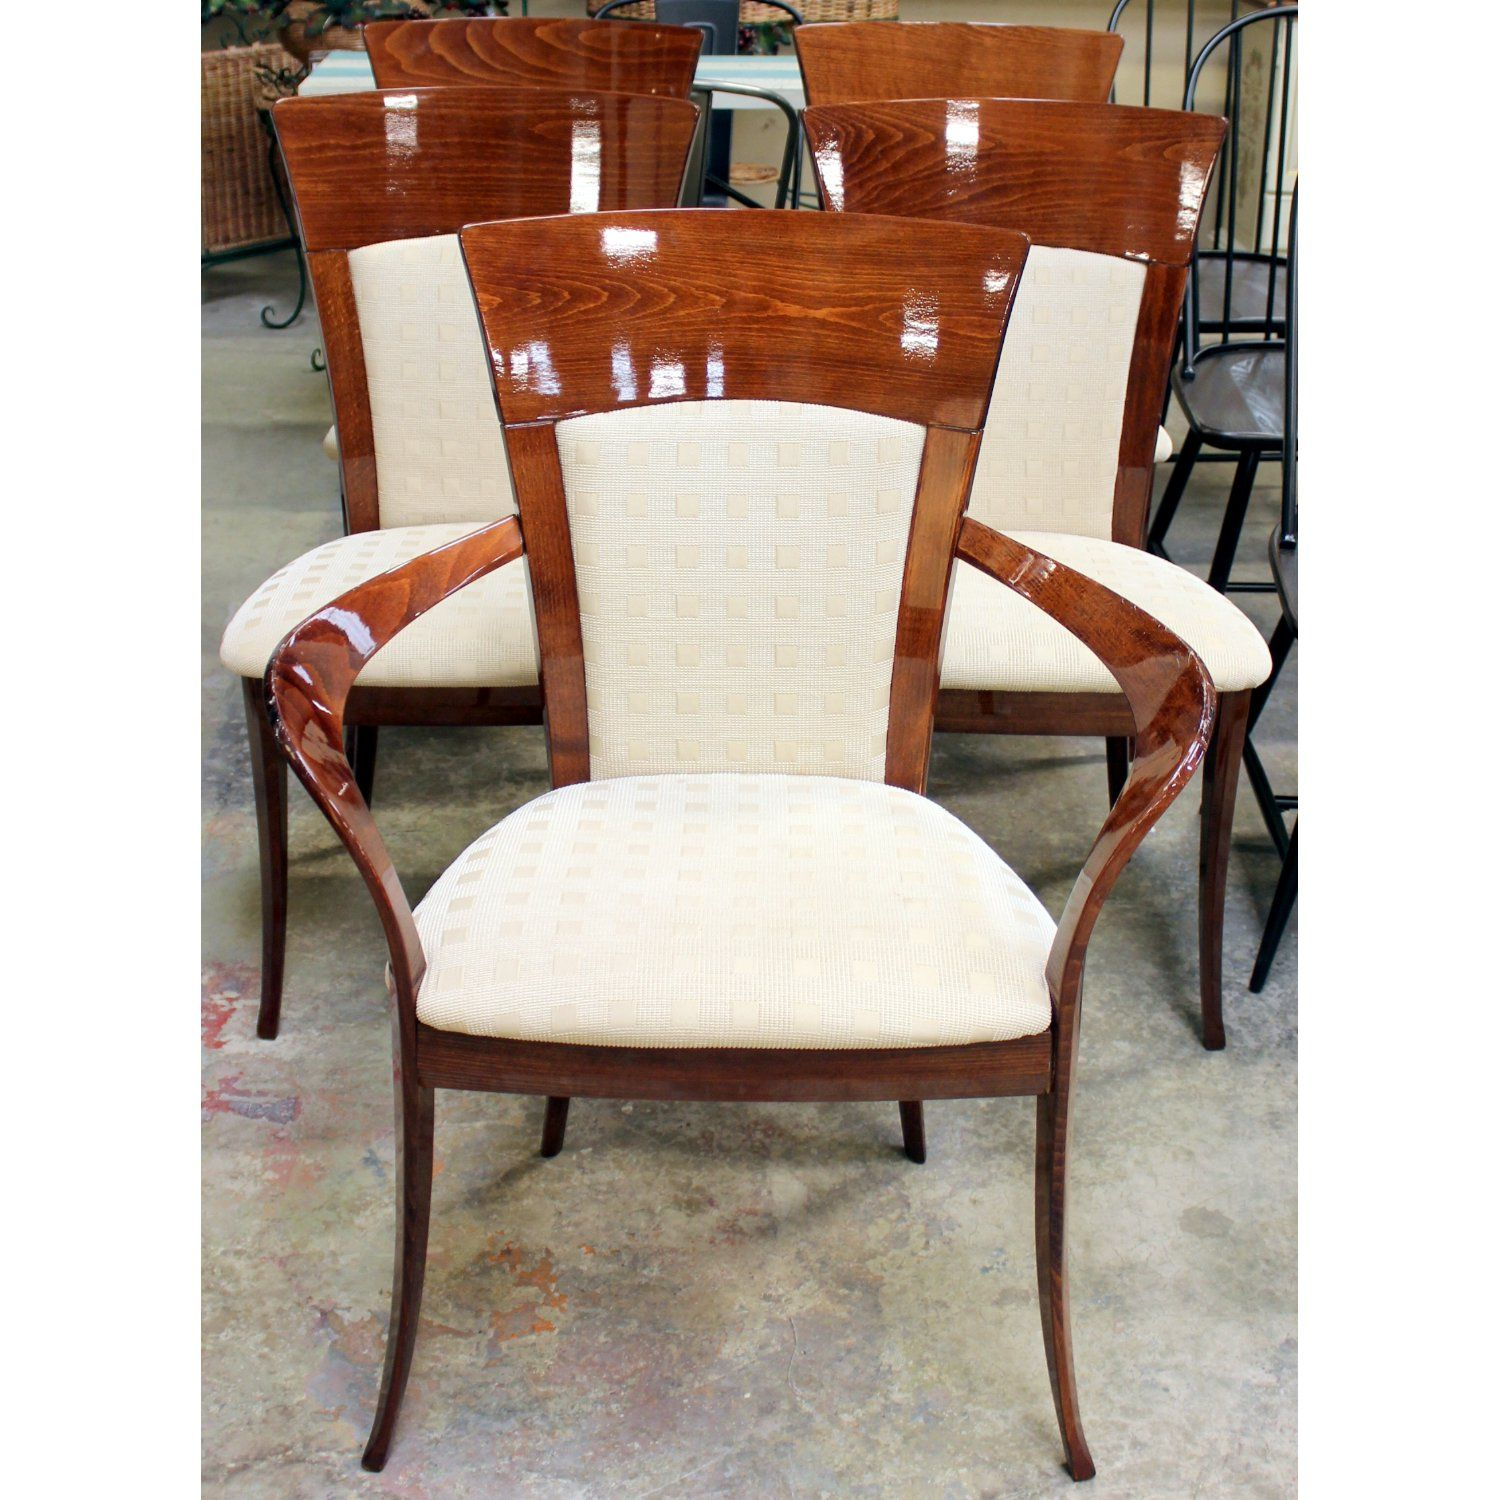 High Quality Ello Furniture Set Of 5 Dining Chairs | Upscale Consignment